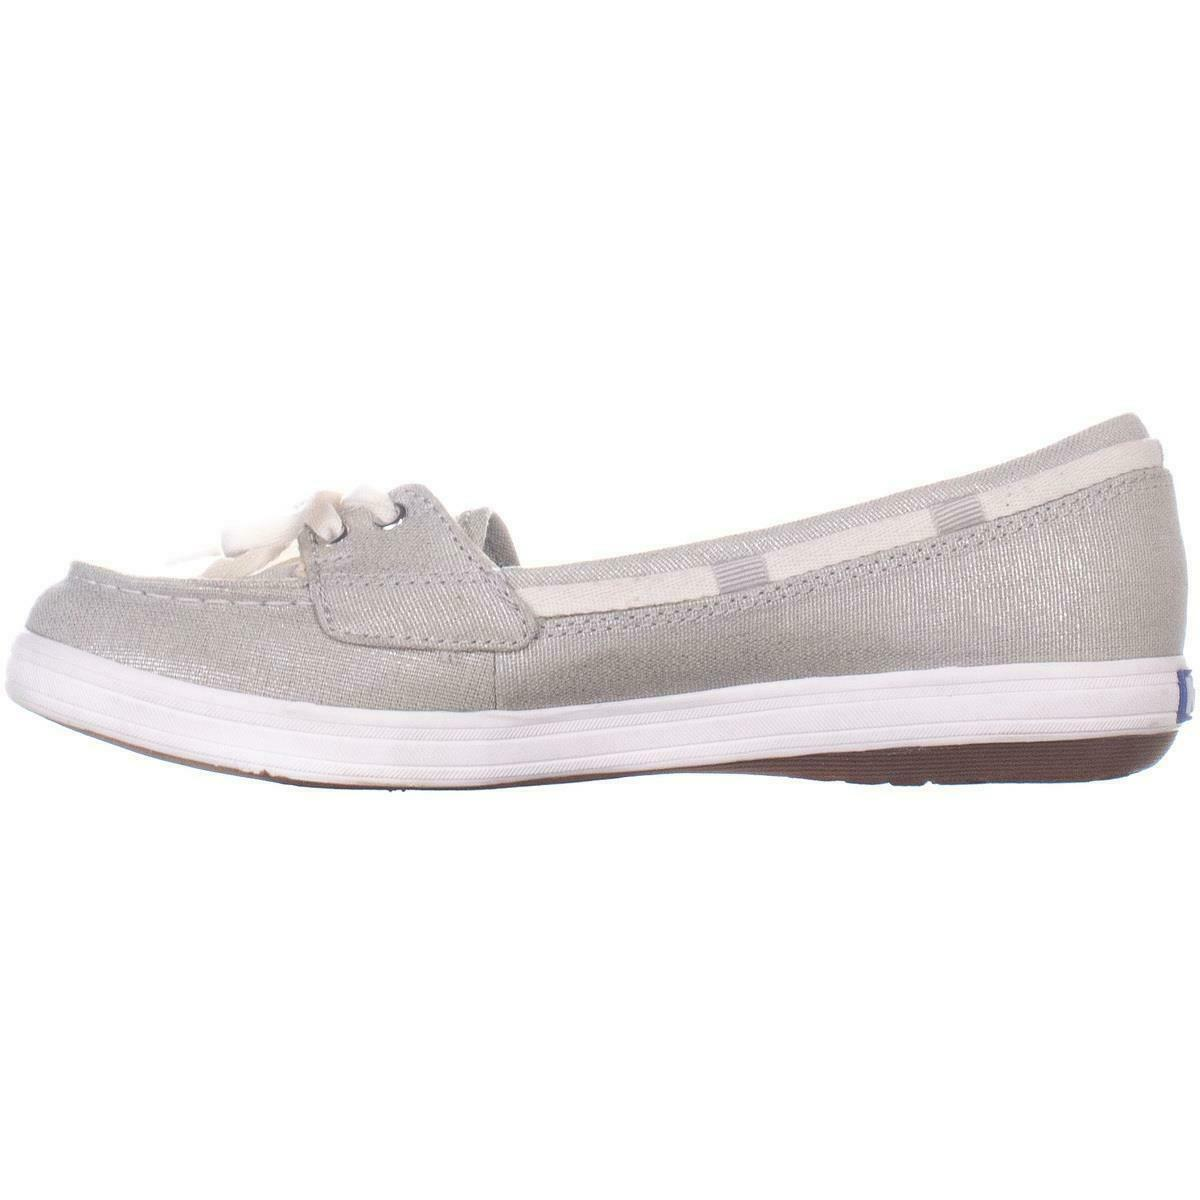 Keds Glimmer Lace Up Boat Shoes 553, Silver, 6.5 US / 37 EU image 4